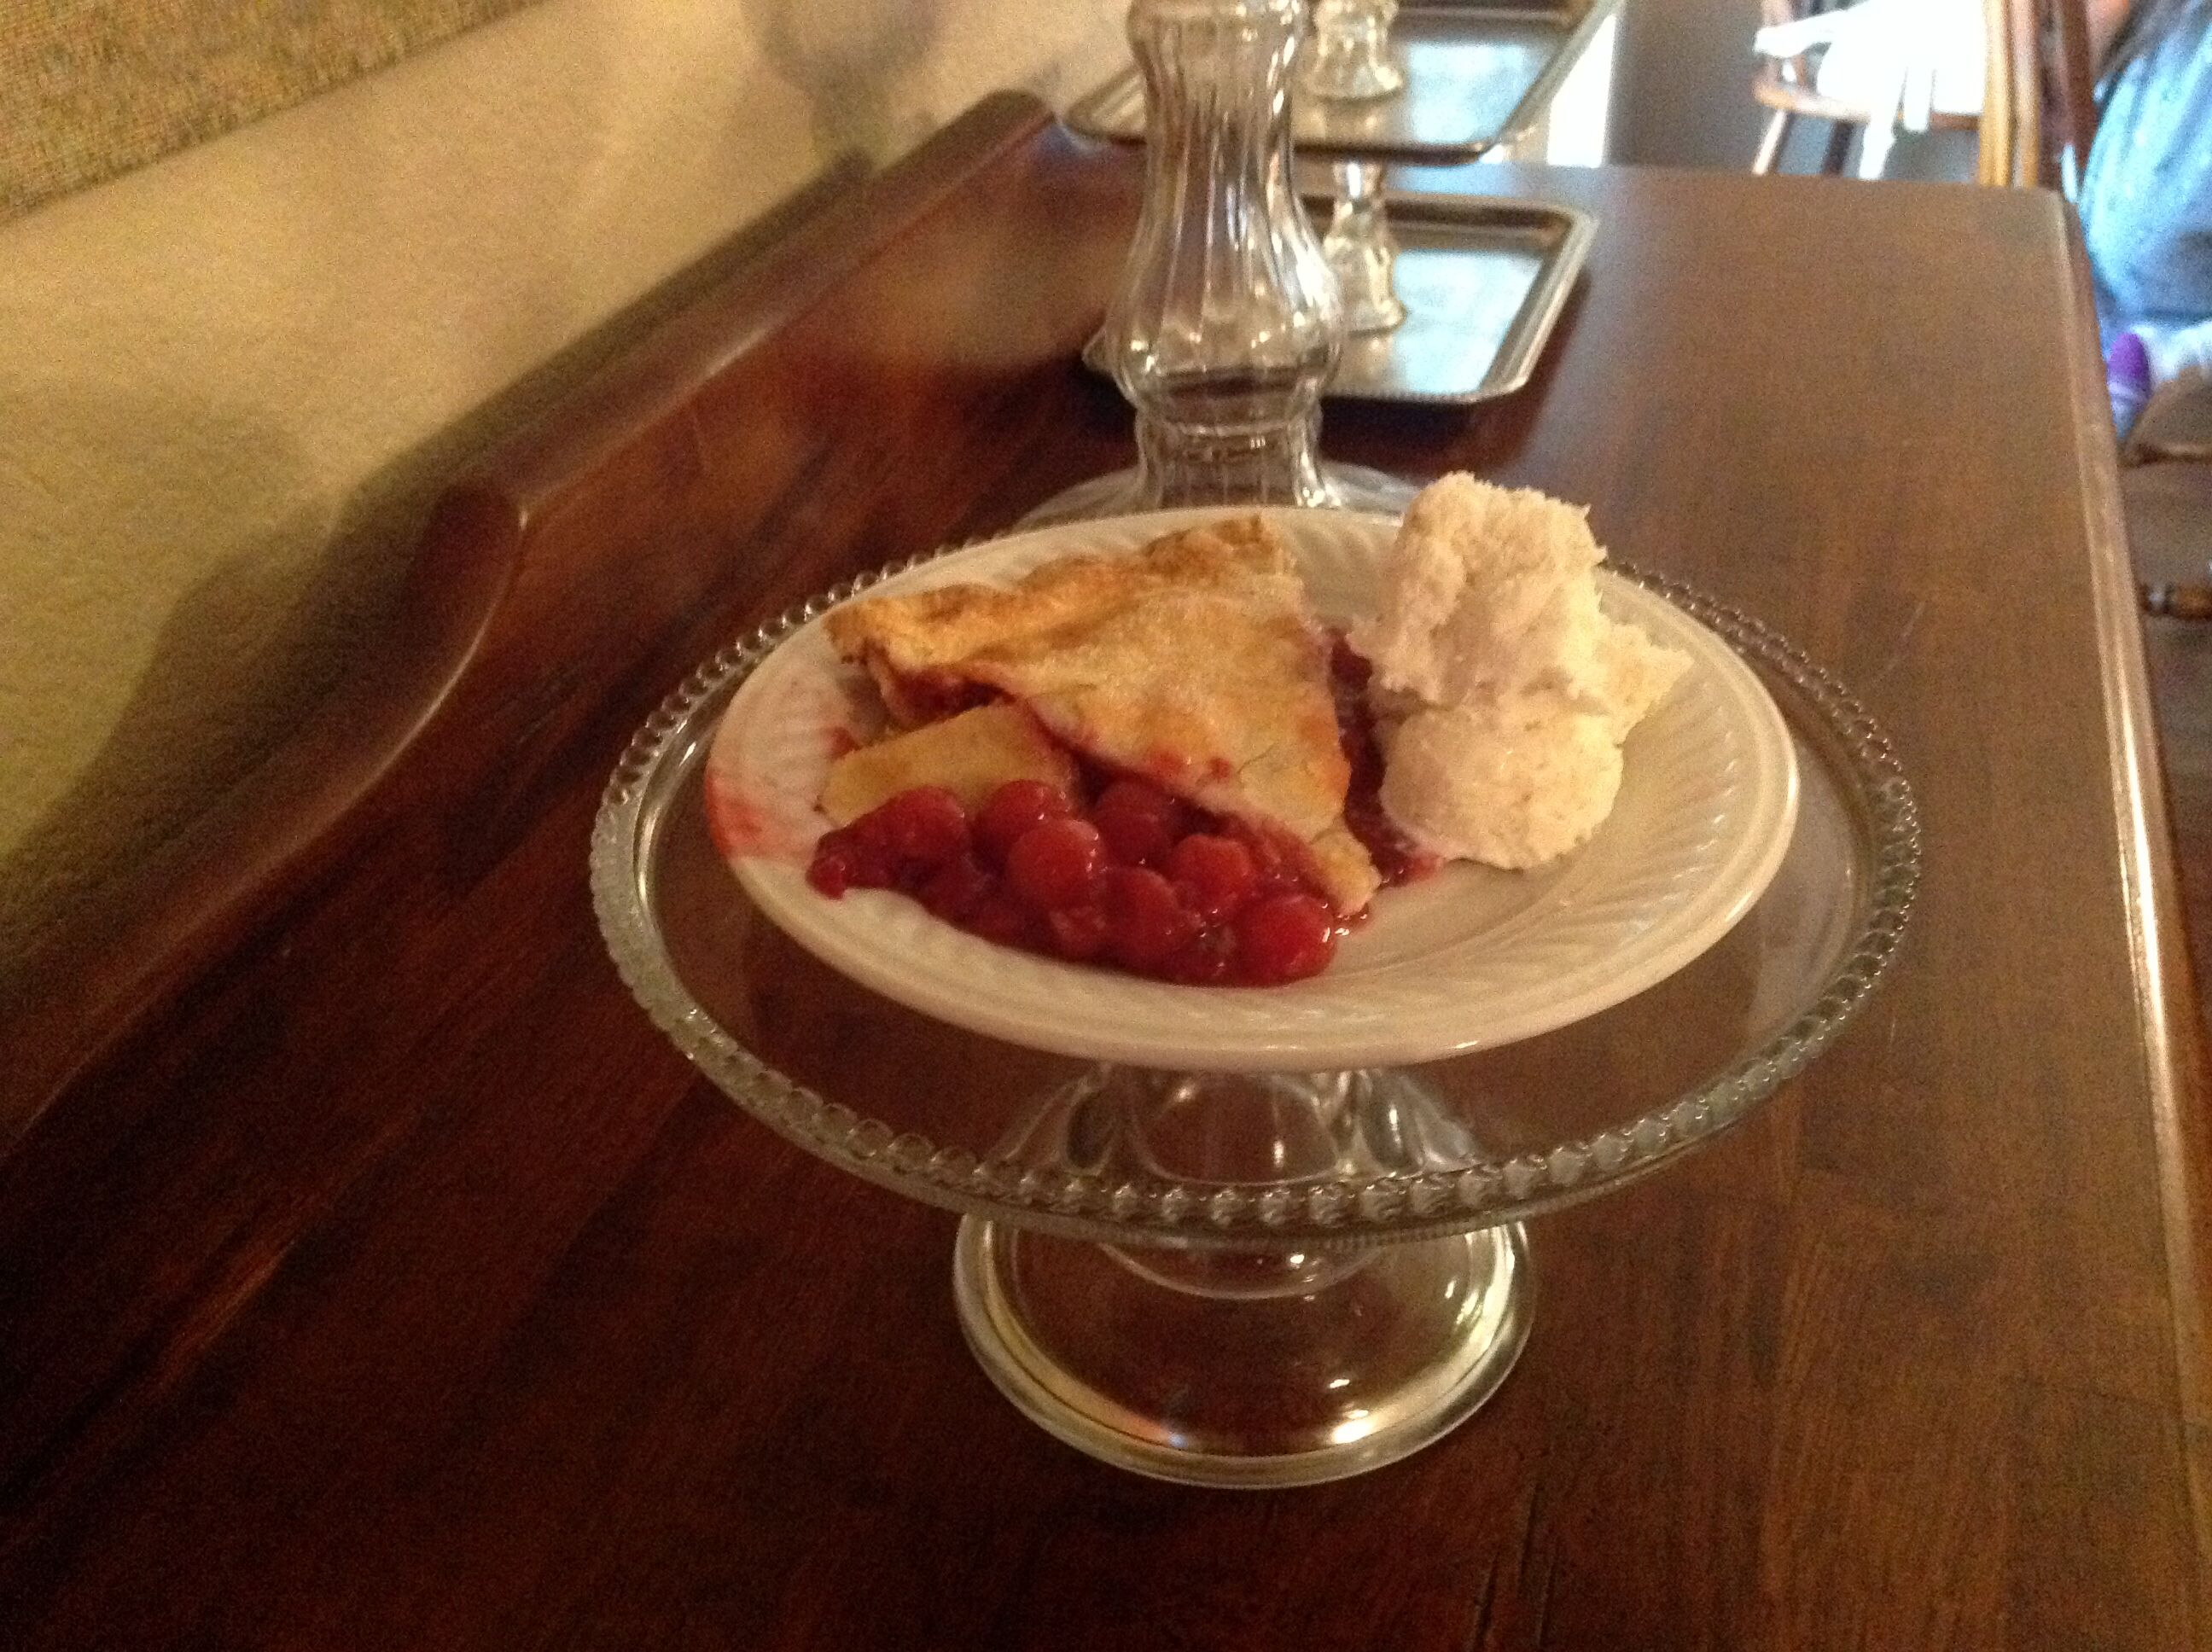 Cherry berry pie, sliced